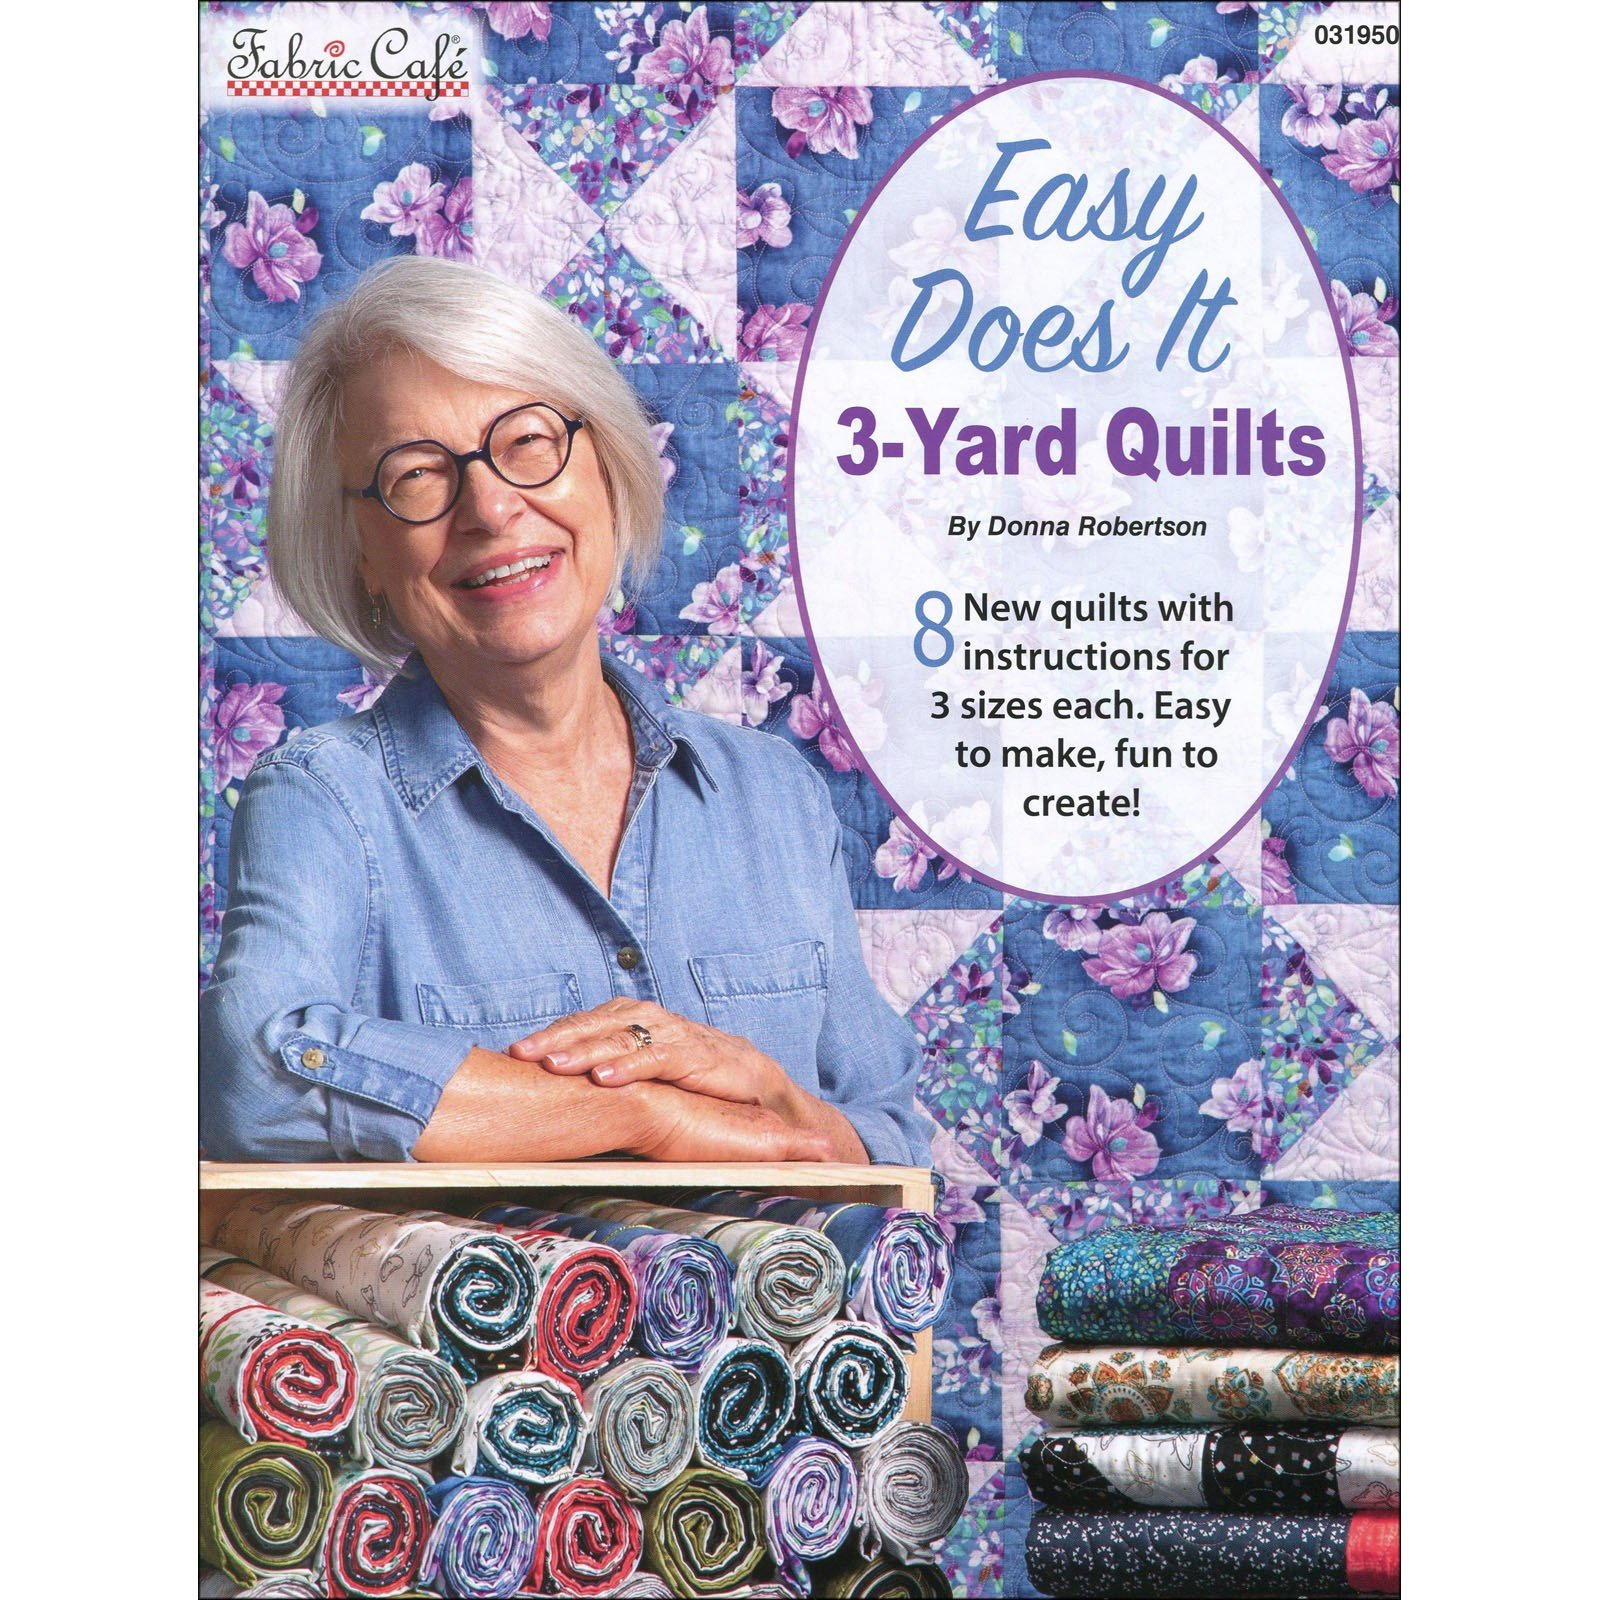 Easy does it - 3 yard quilt book